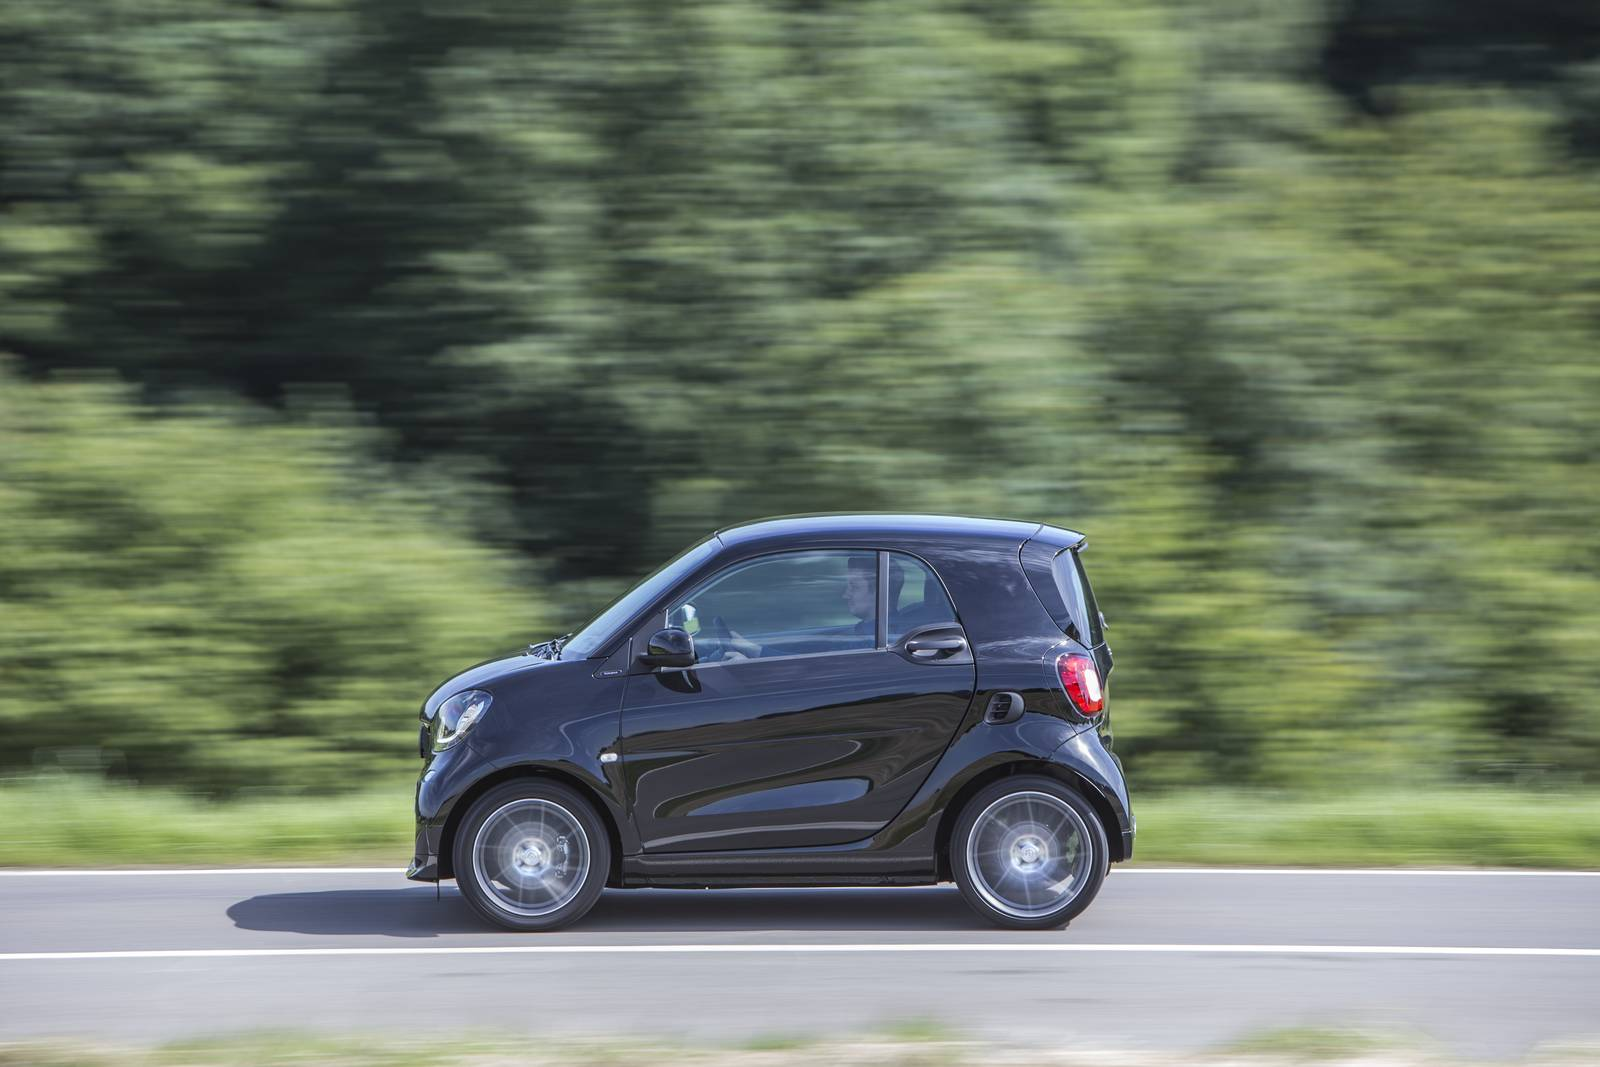 2017 smart brabus fortwo review gtspiritconclusion